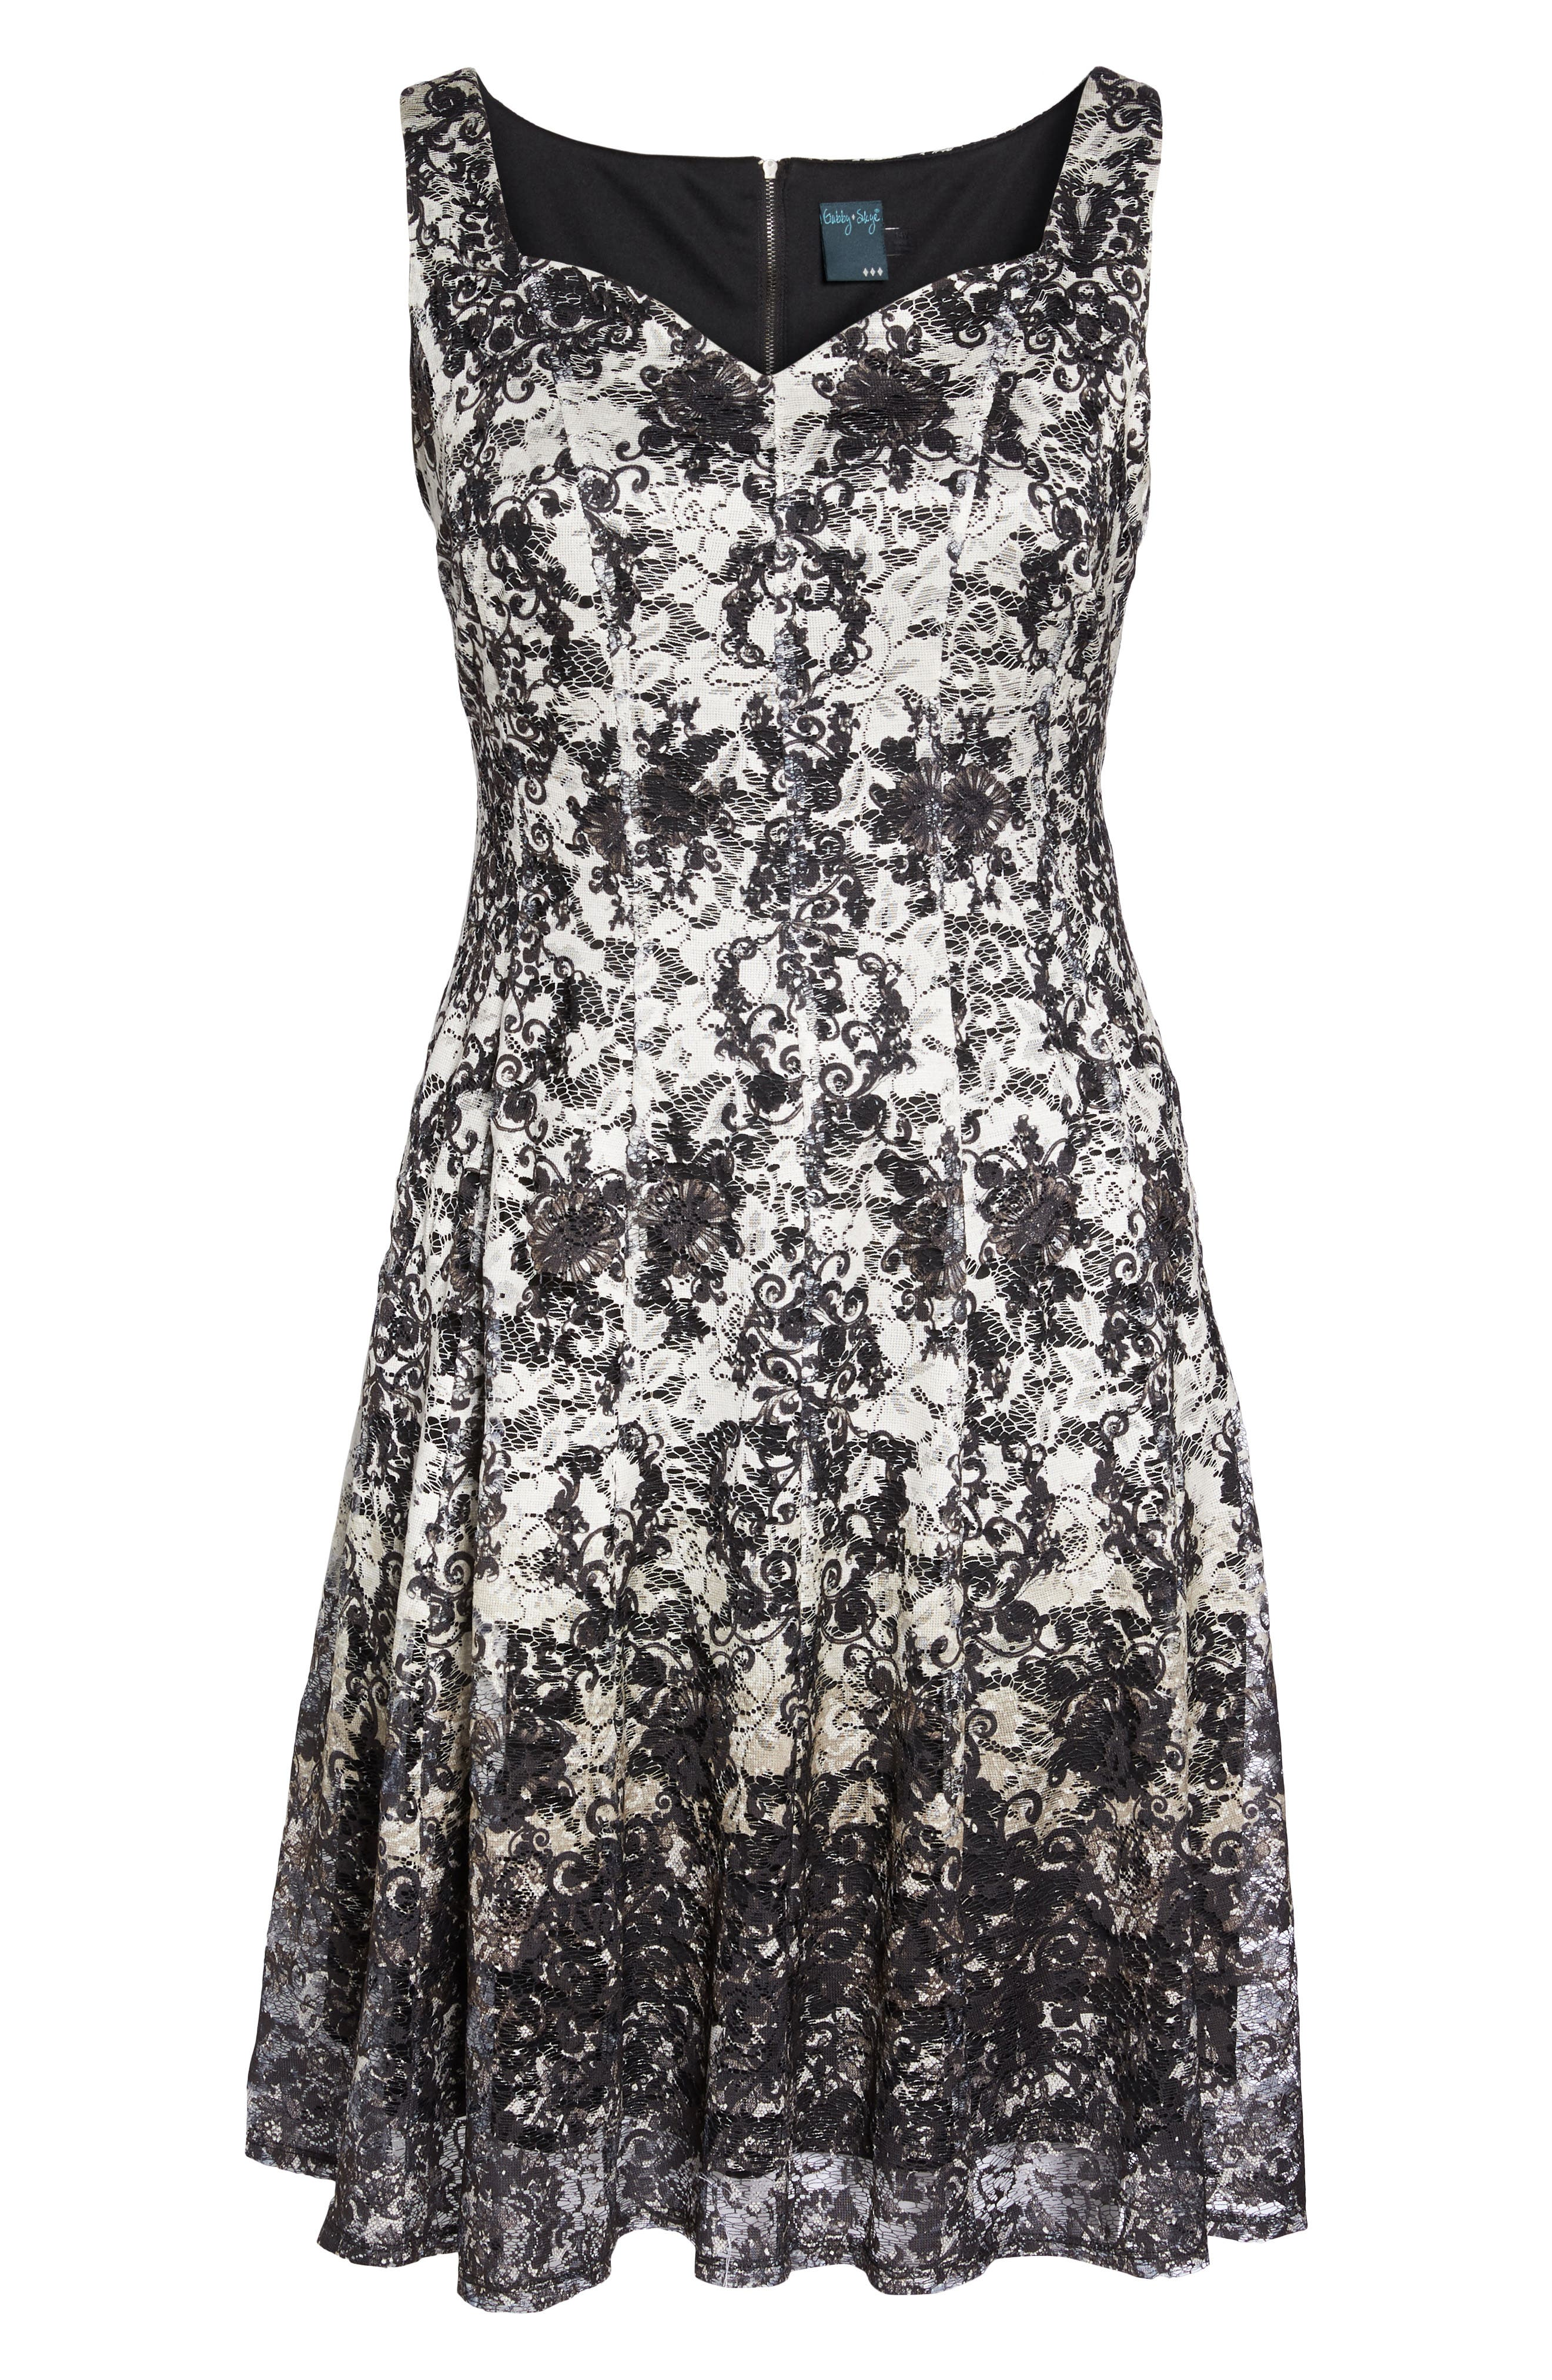 Printed Lace Fit & Flare Dress,                             Alternate thumbnail 6, color,                             Ivory/ Black